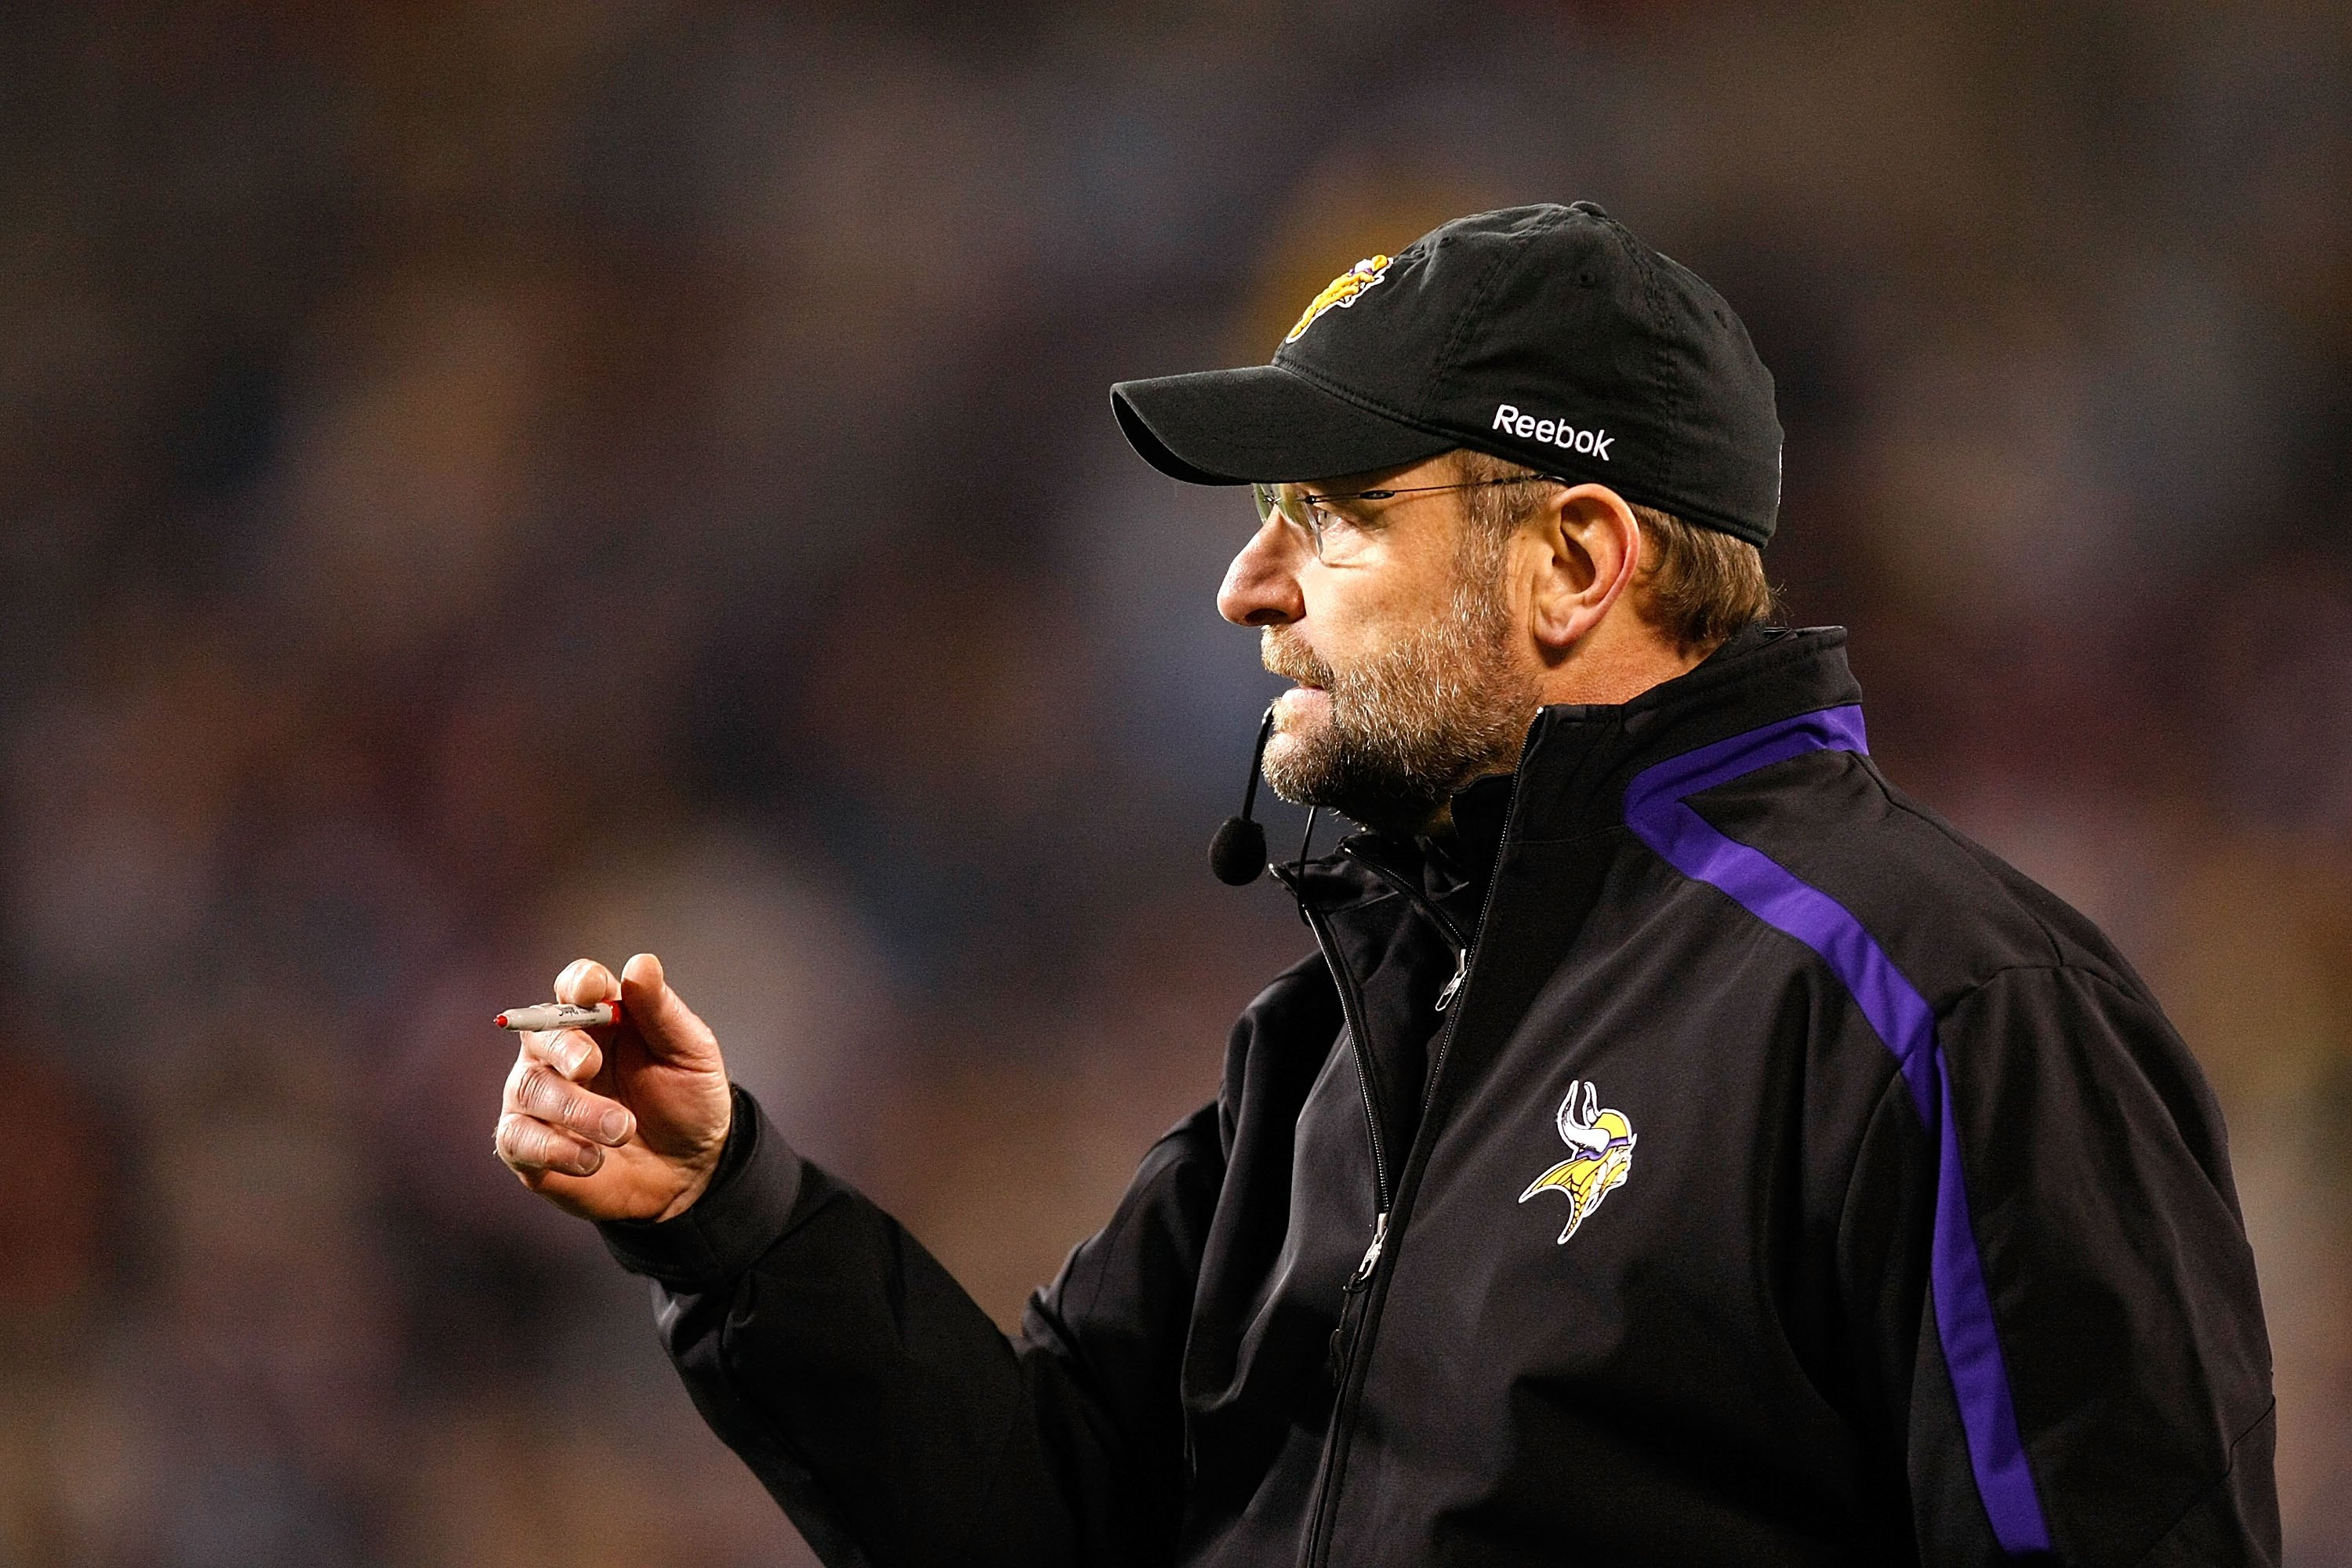 CHARLOTTE, NC - DECEMBER 20:  Head coach Brad Childress of the Minnesota Vikings against the Carolina Panthers at Bank of America Stadium on December 20, 2009 in Charlotte, North Carolina.  (Photo by Kevin C. Cox/Getty Images)